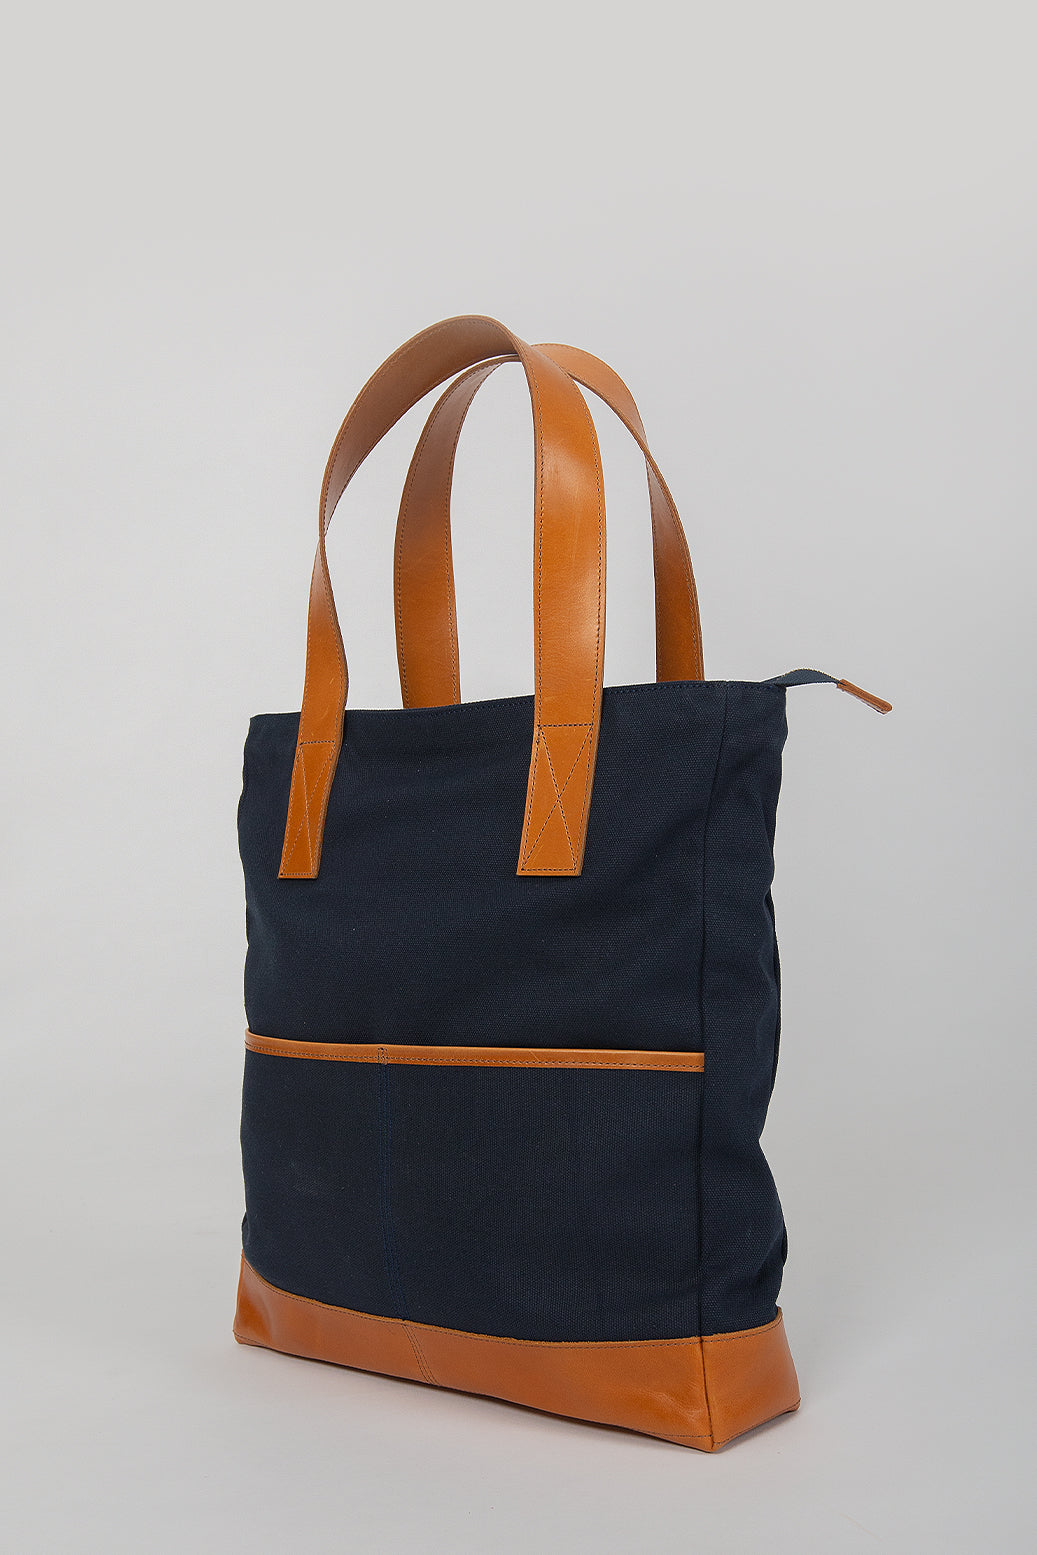 The Porter Tote in Navy - andanté, bags - loafers, bags leather footwear